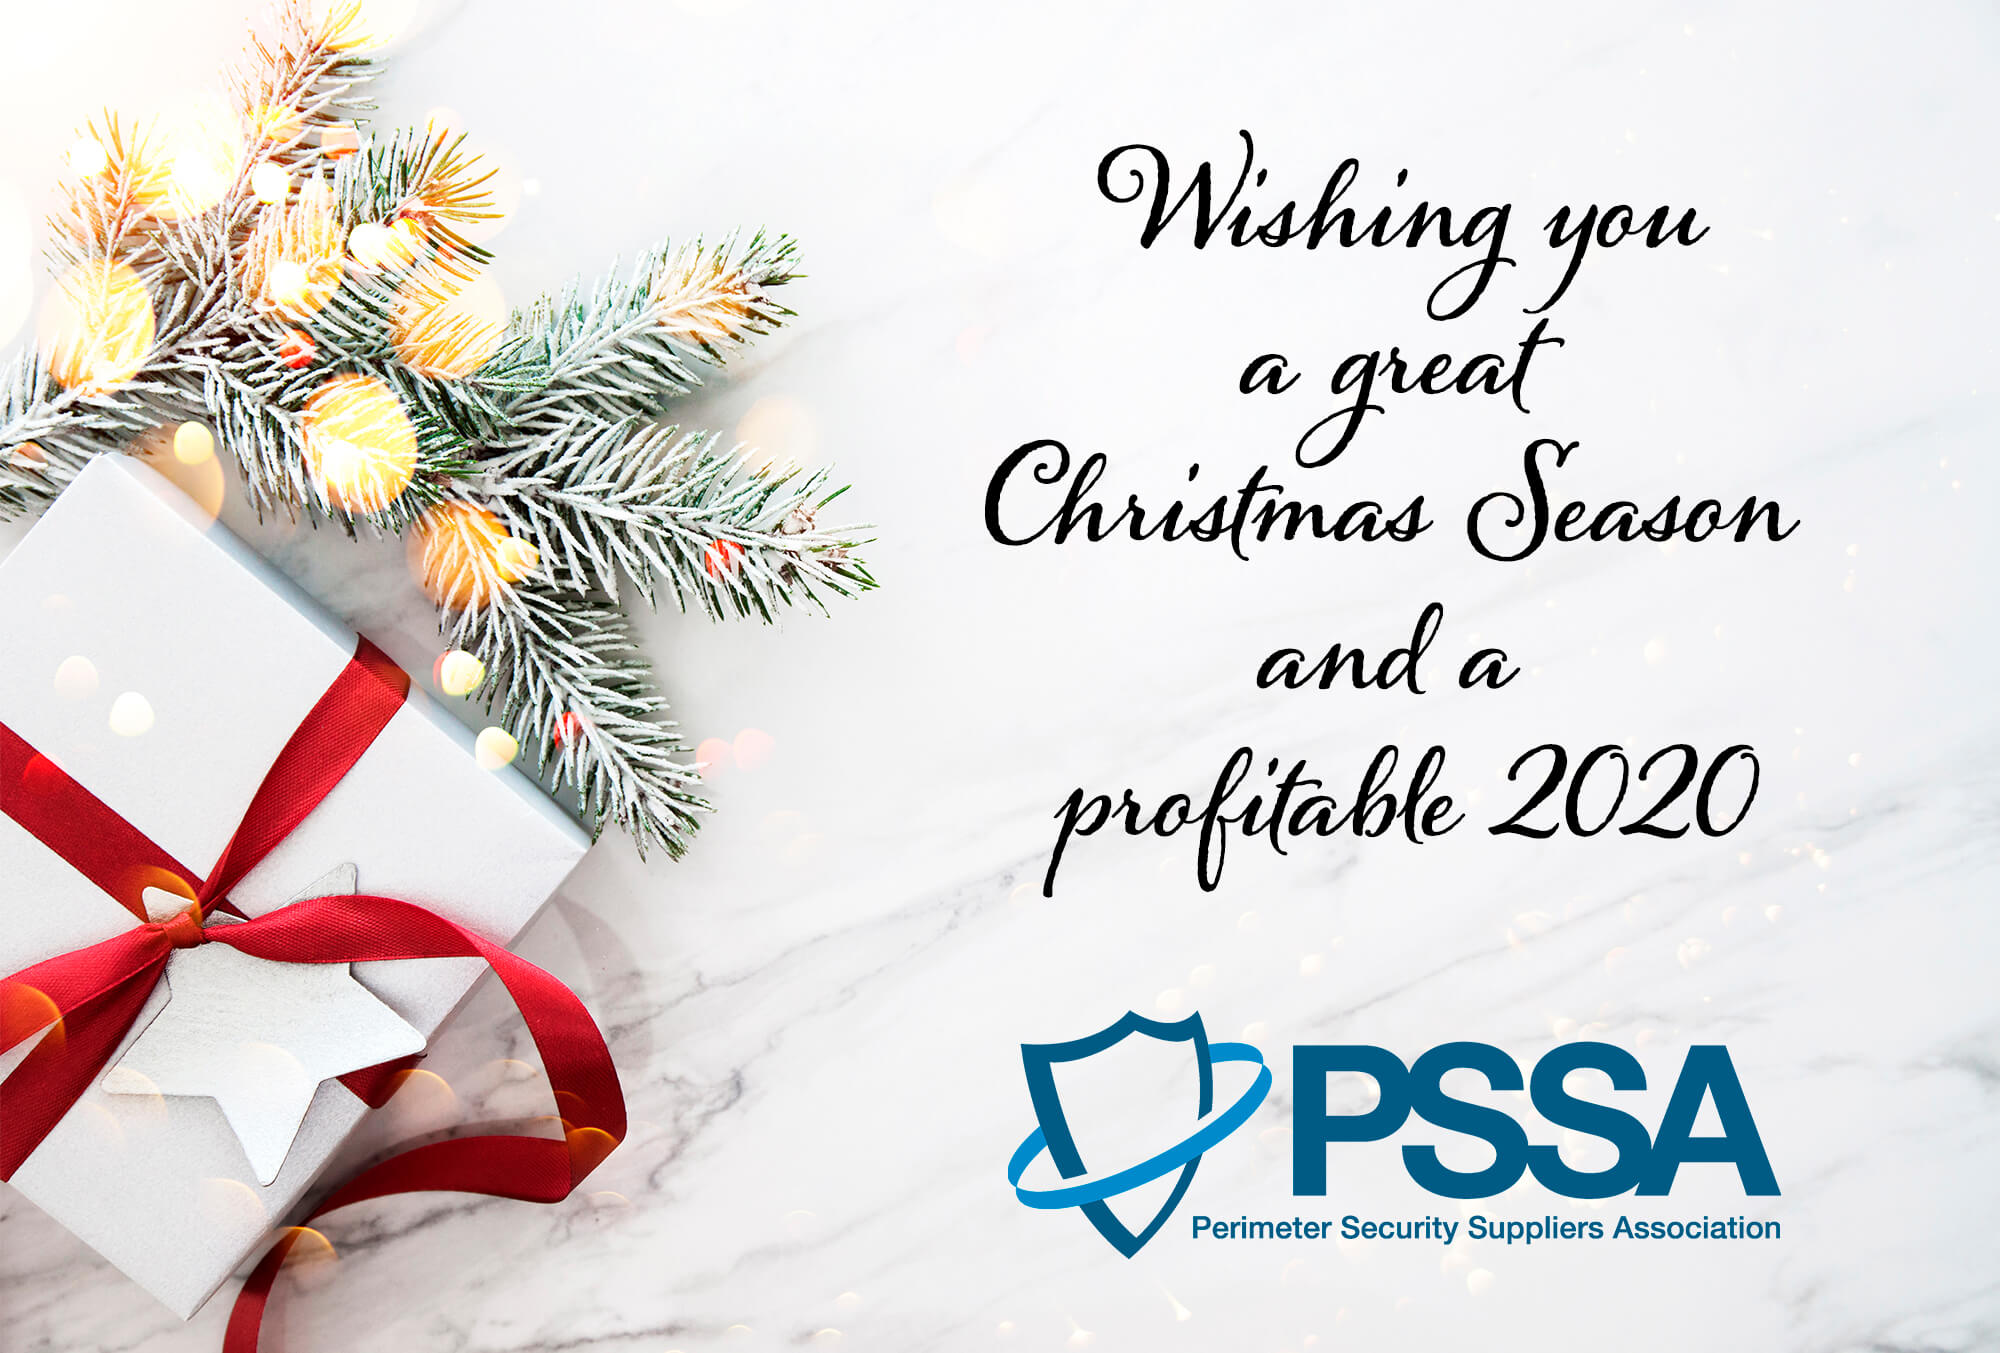 Merry Christmas from the PSSA Team